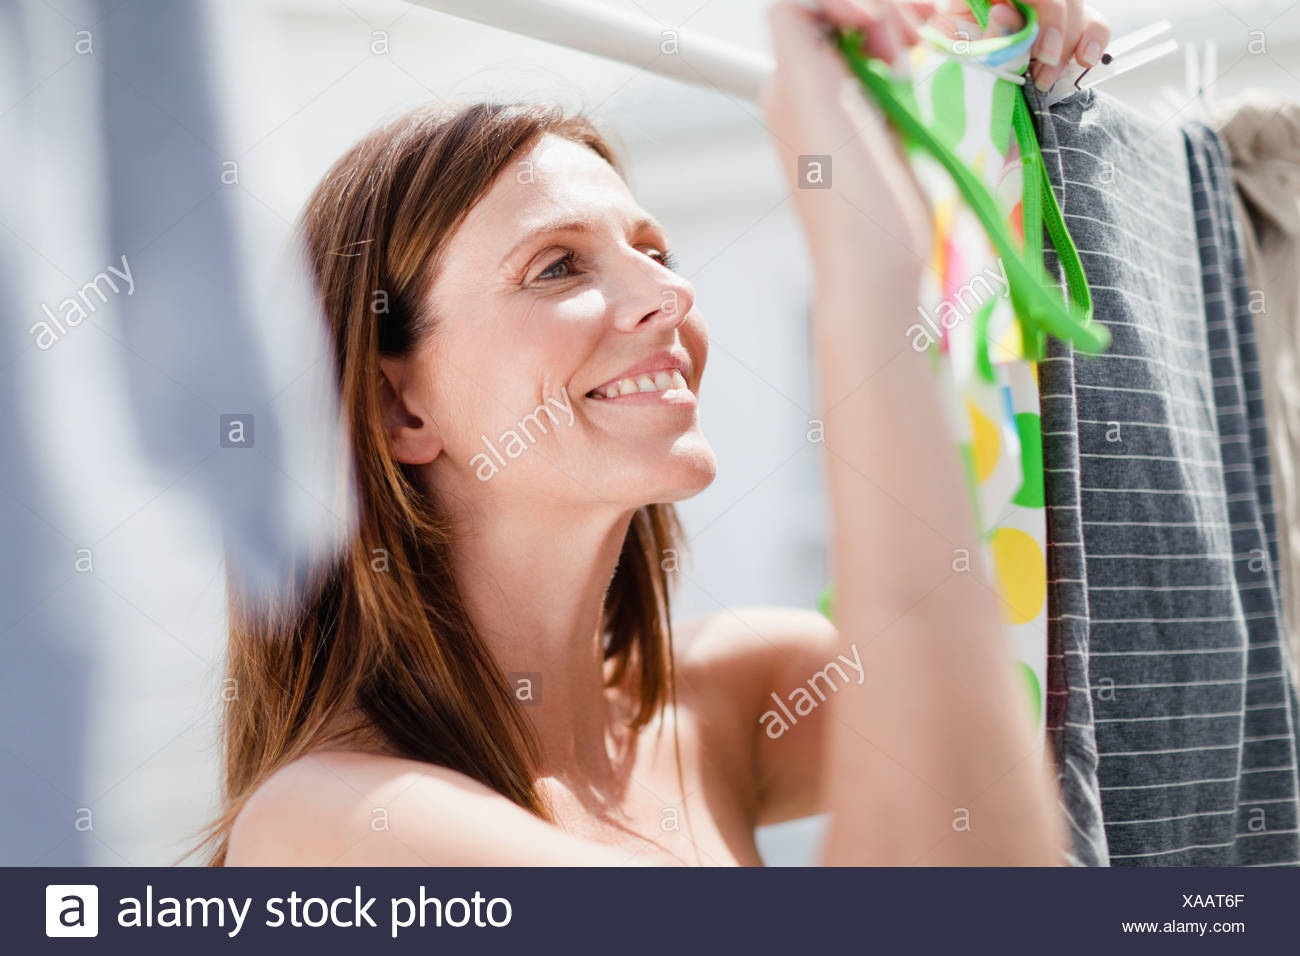 Smiling woman hanging laundry - Stock Image